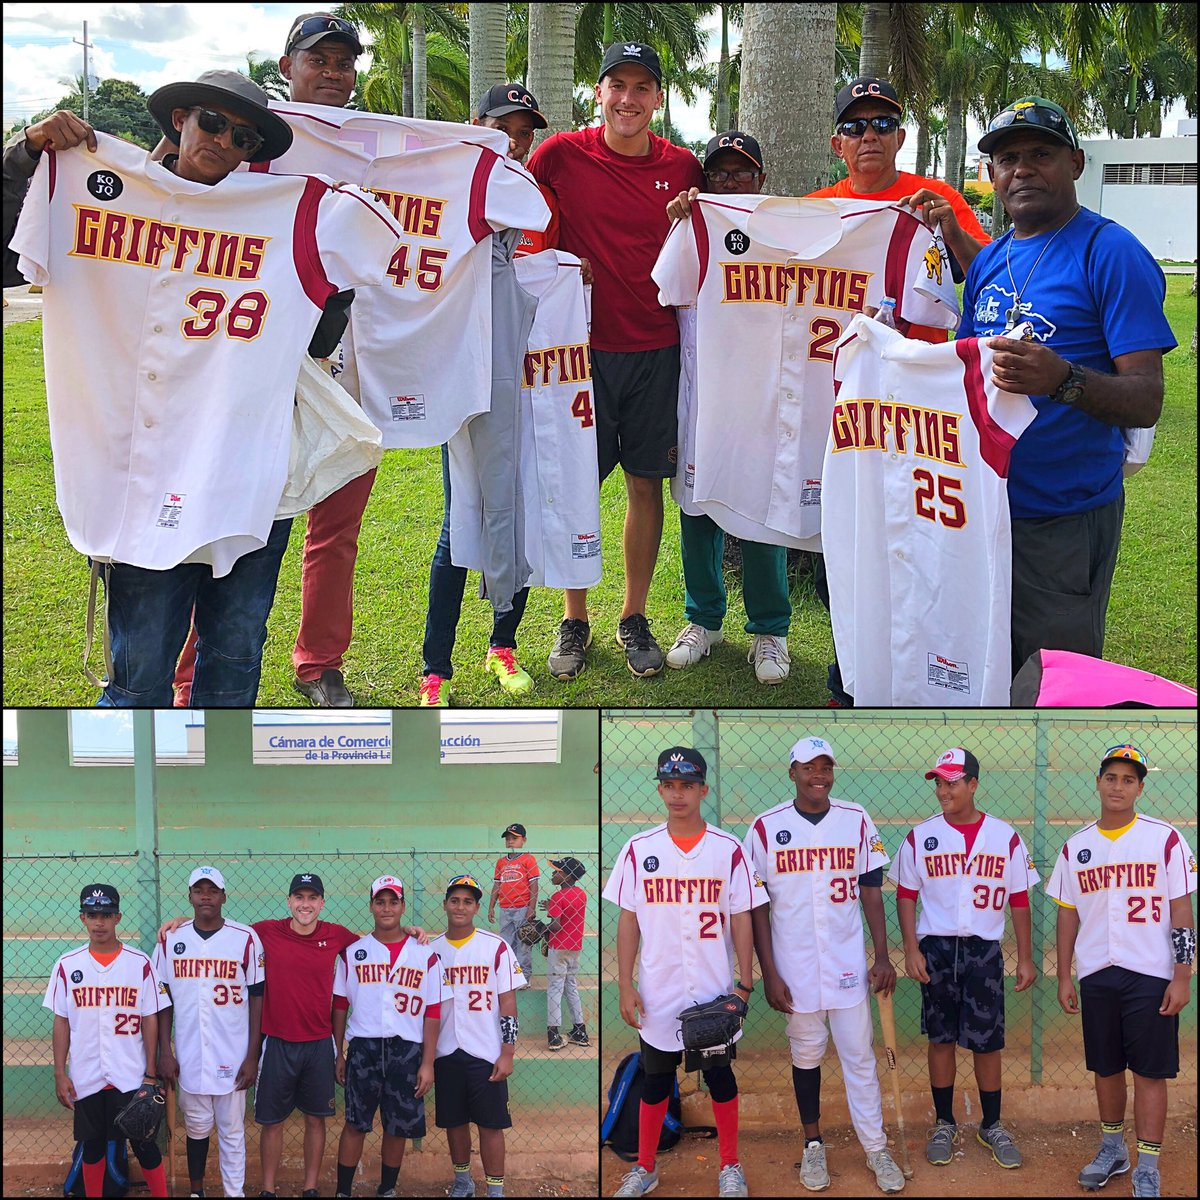 2018 grad @MP_BUCKLEY delivered some donated Griff gear to the local players on his recent mission trip to the Dominican Republic. #LookGoodPlayGood #PayItForward <br>http://pic.twitter.com/vc9liiSZM9